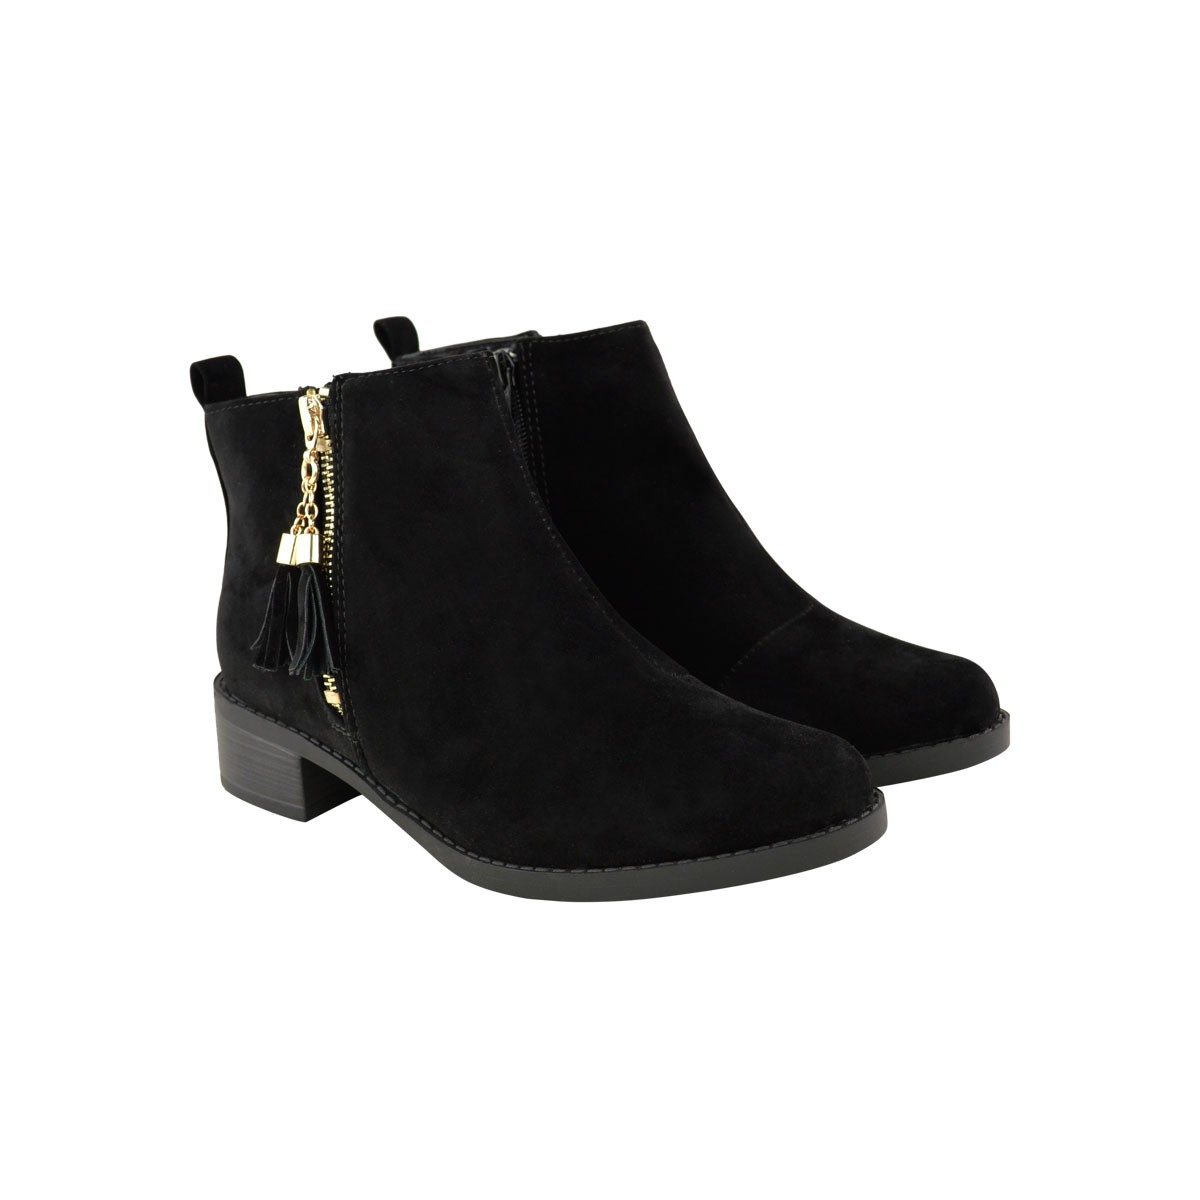 Flat Ankle Boots Suede rRrQSNB5